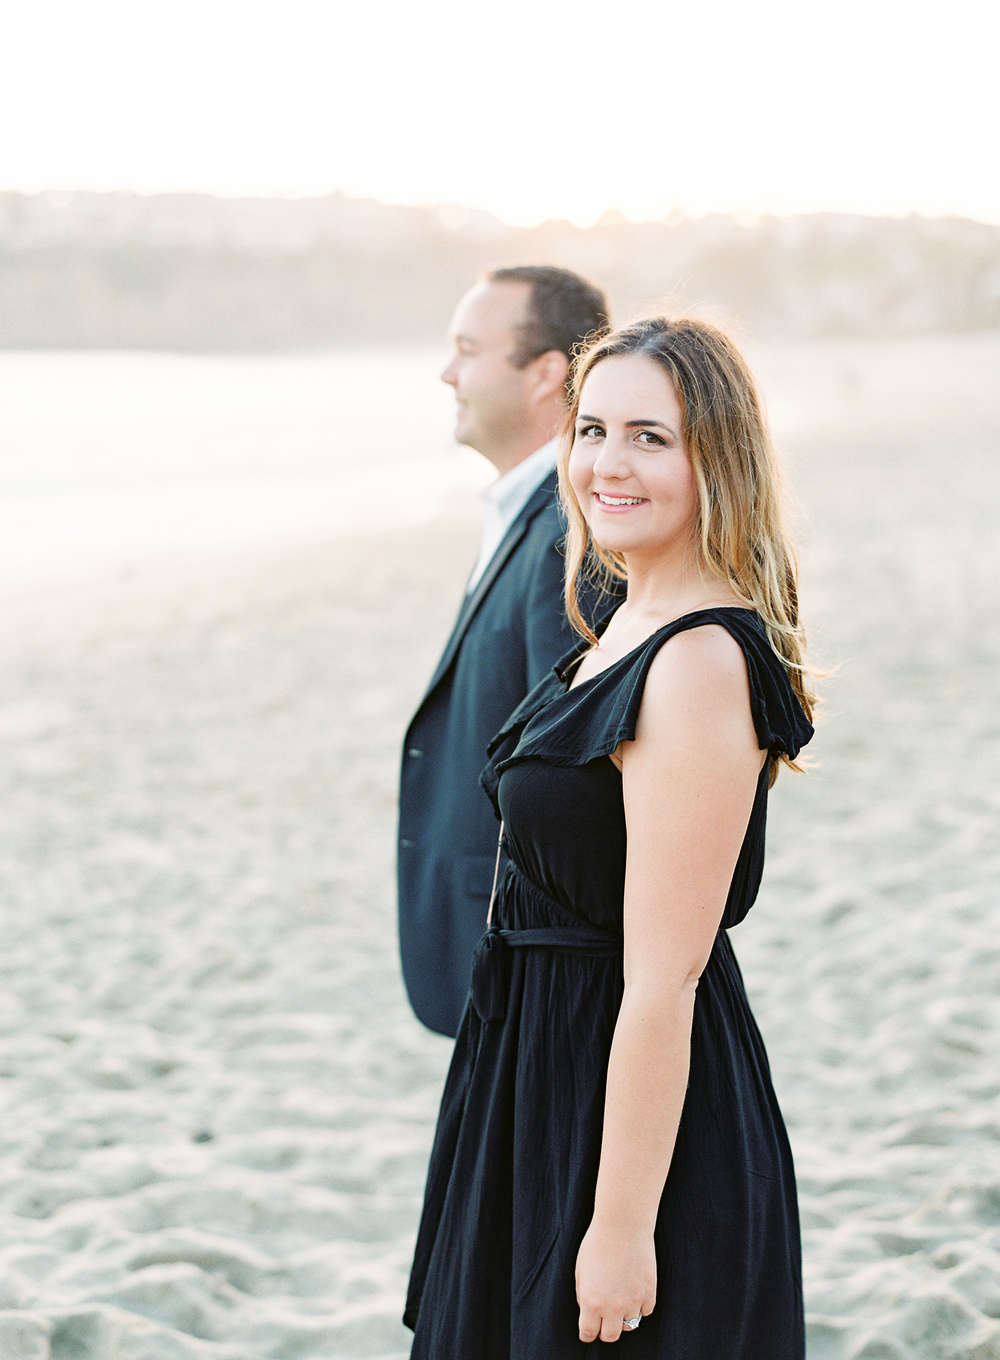 Laguna-Beach-Engagement-Film-Wedding-Orange-County-93.jpg